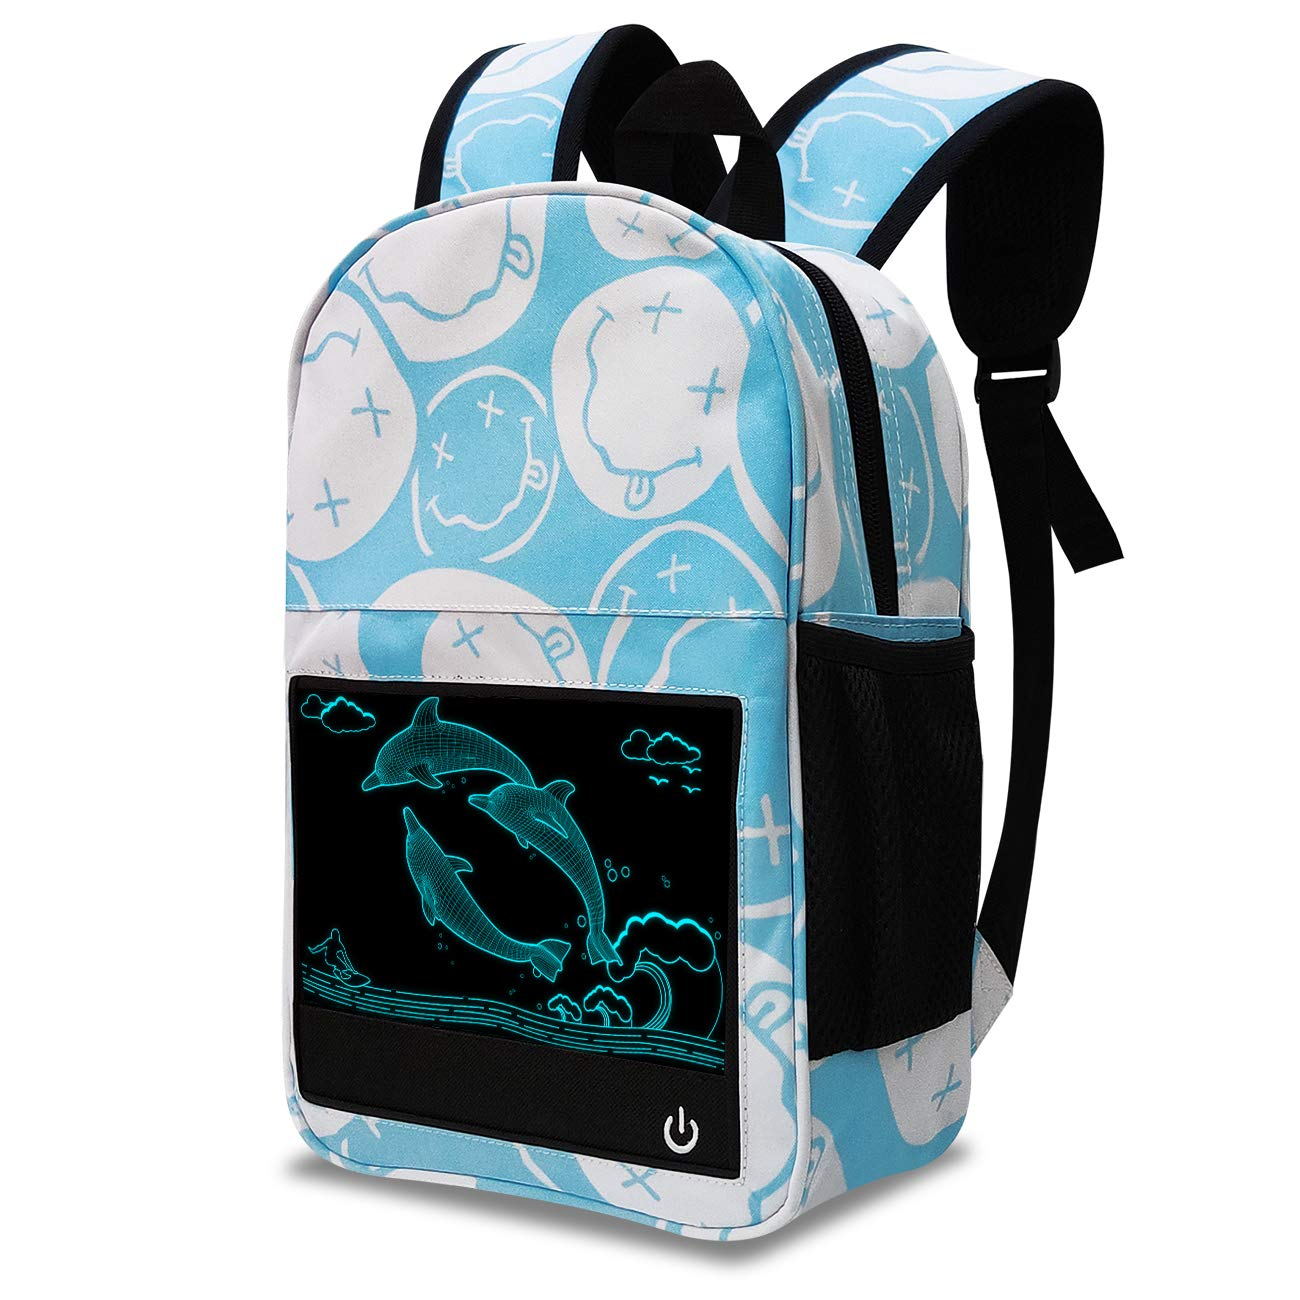 FULLOSUN Kids Backpack with 7 Colors Changing LED Dolphin Light Toddler Mini Travel Bag for Baby Kids Boy Girl 3-9 Years Luminous Study Gift -Blue